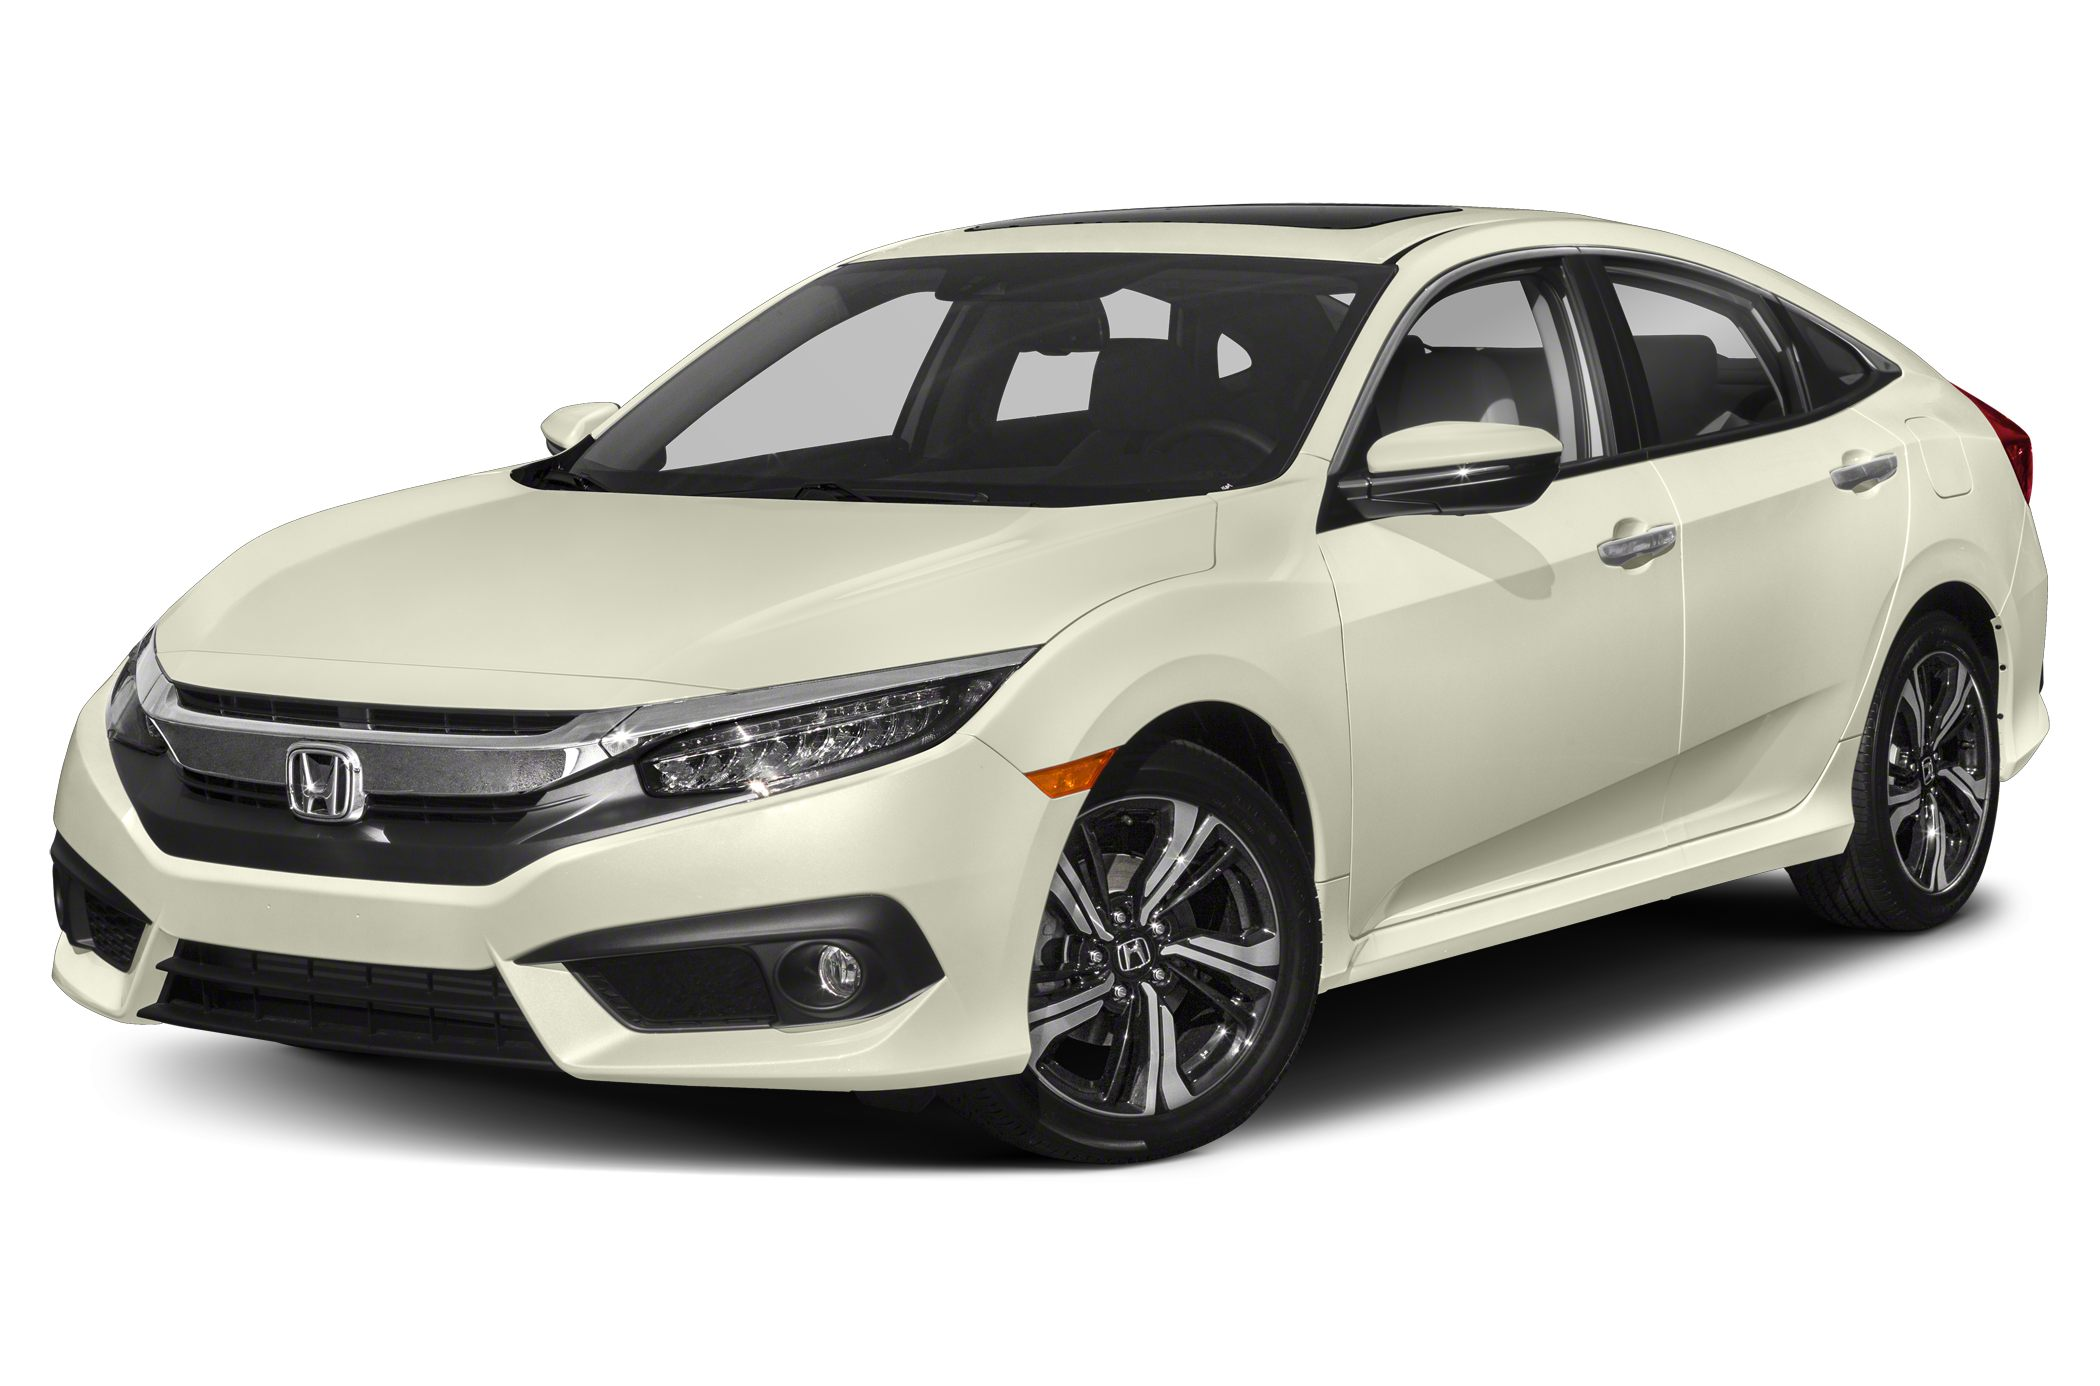 2018 Honda Civic Touring 4dr Sedan Specs and Prices